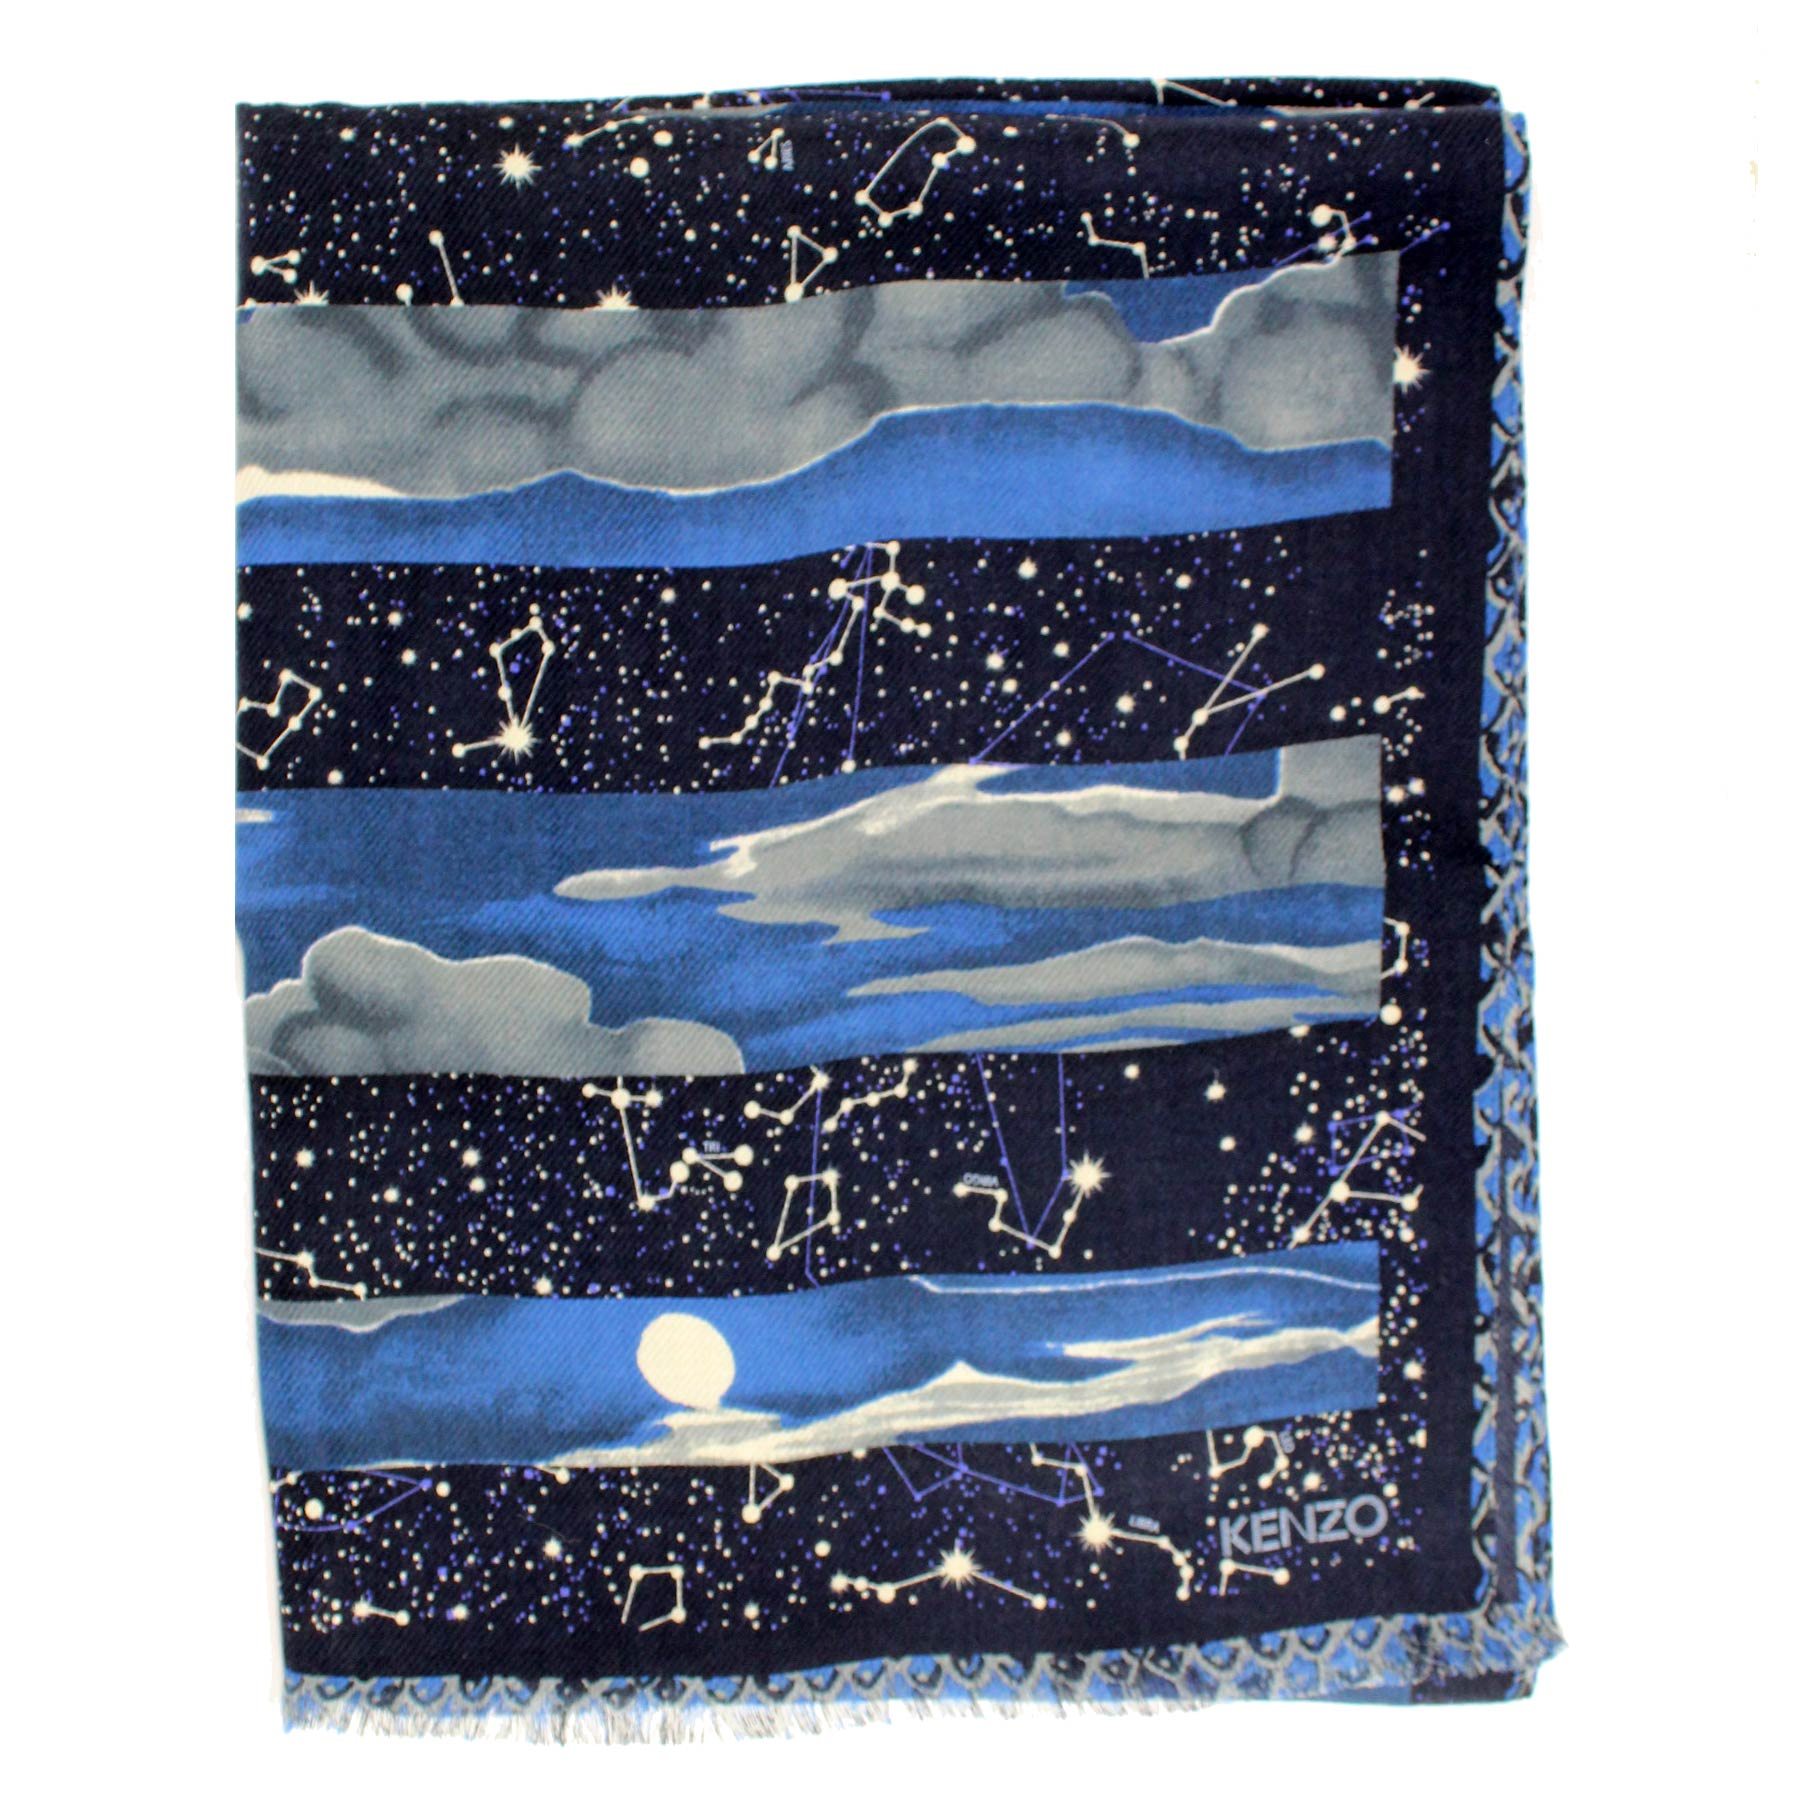 Kenzo Scarf Midnight Blue Horoscope - Wool Silk Shawl SALE